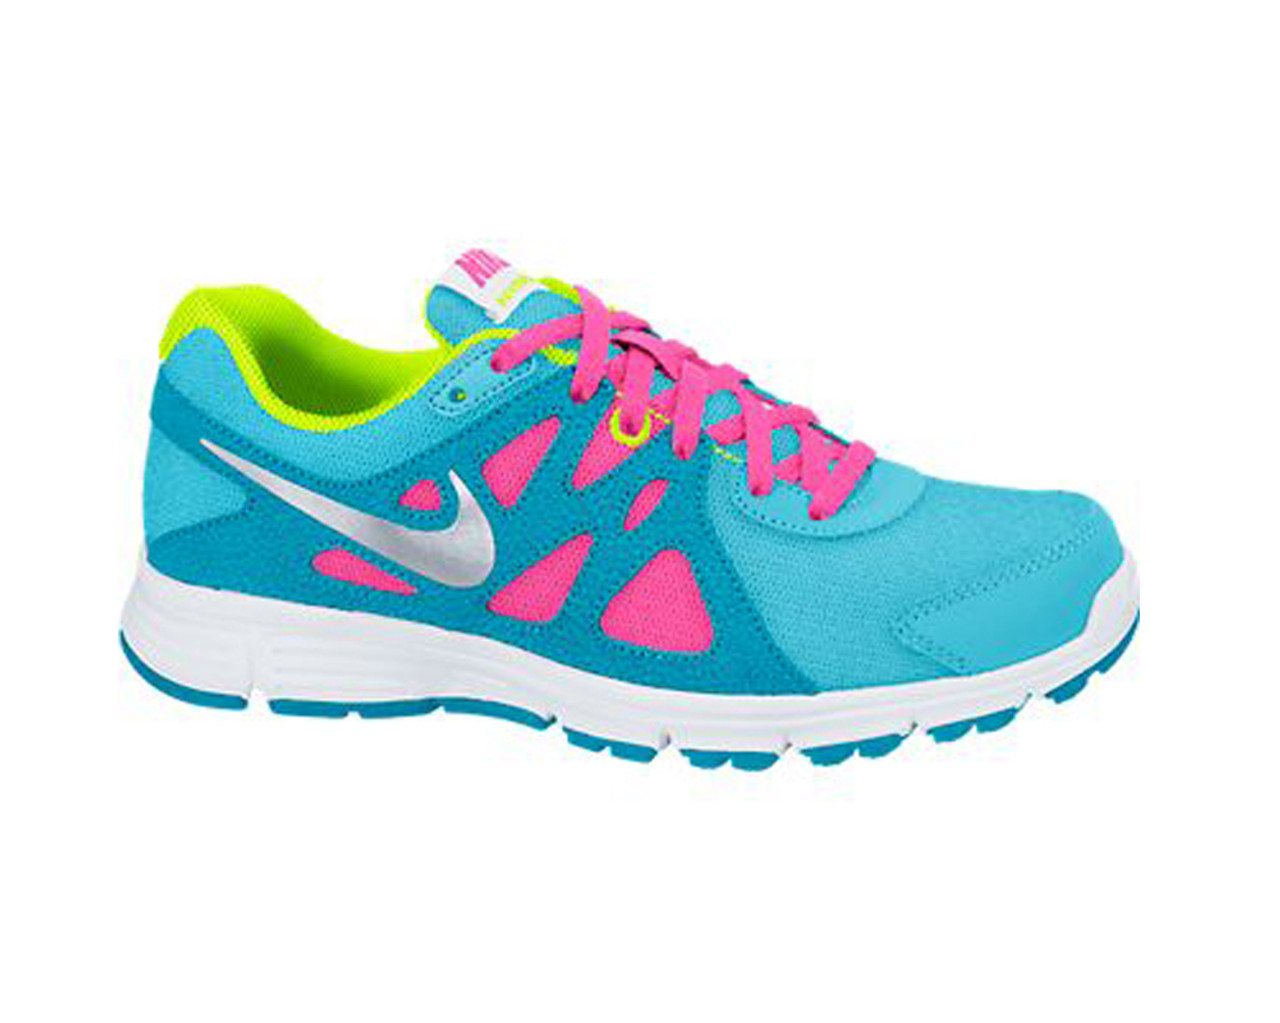 0f706d7633fc Nike Girl s Revolution 2 Athletic Shoe Clearwater Blue Lagoon - Shop now    Shoolu.